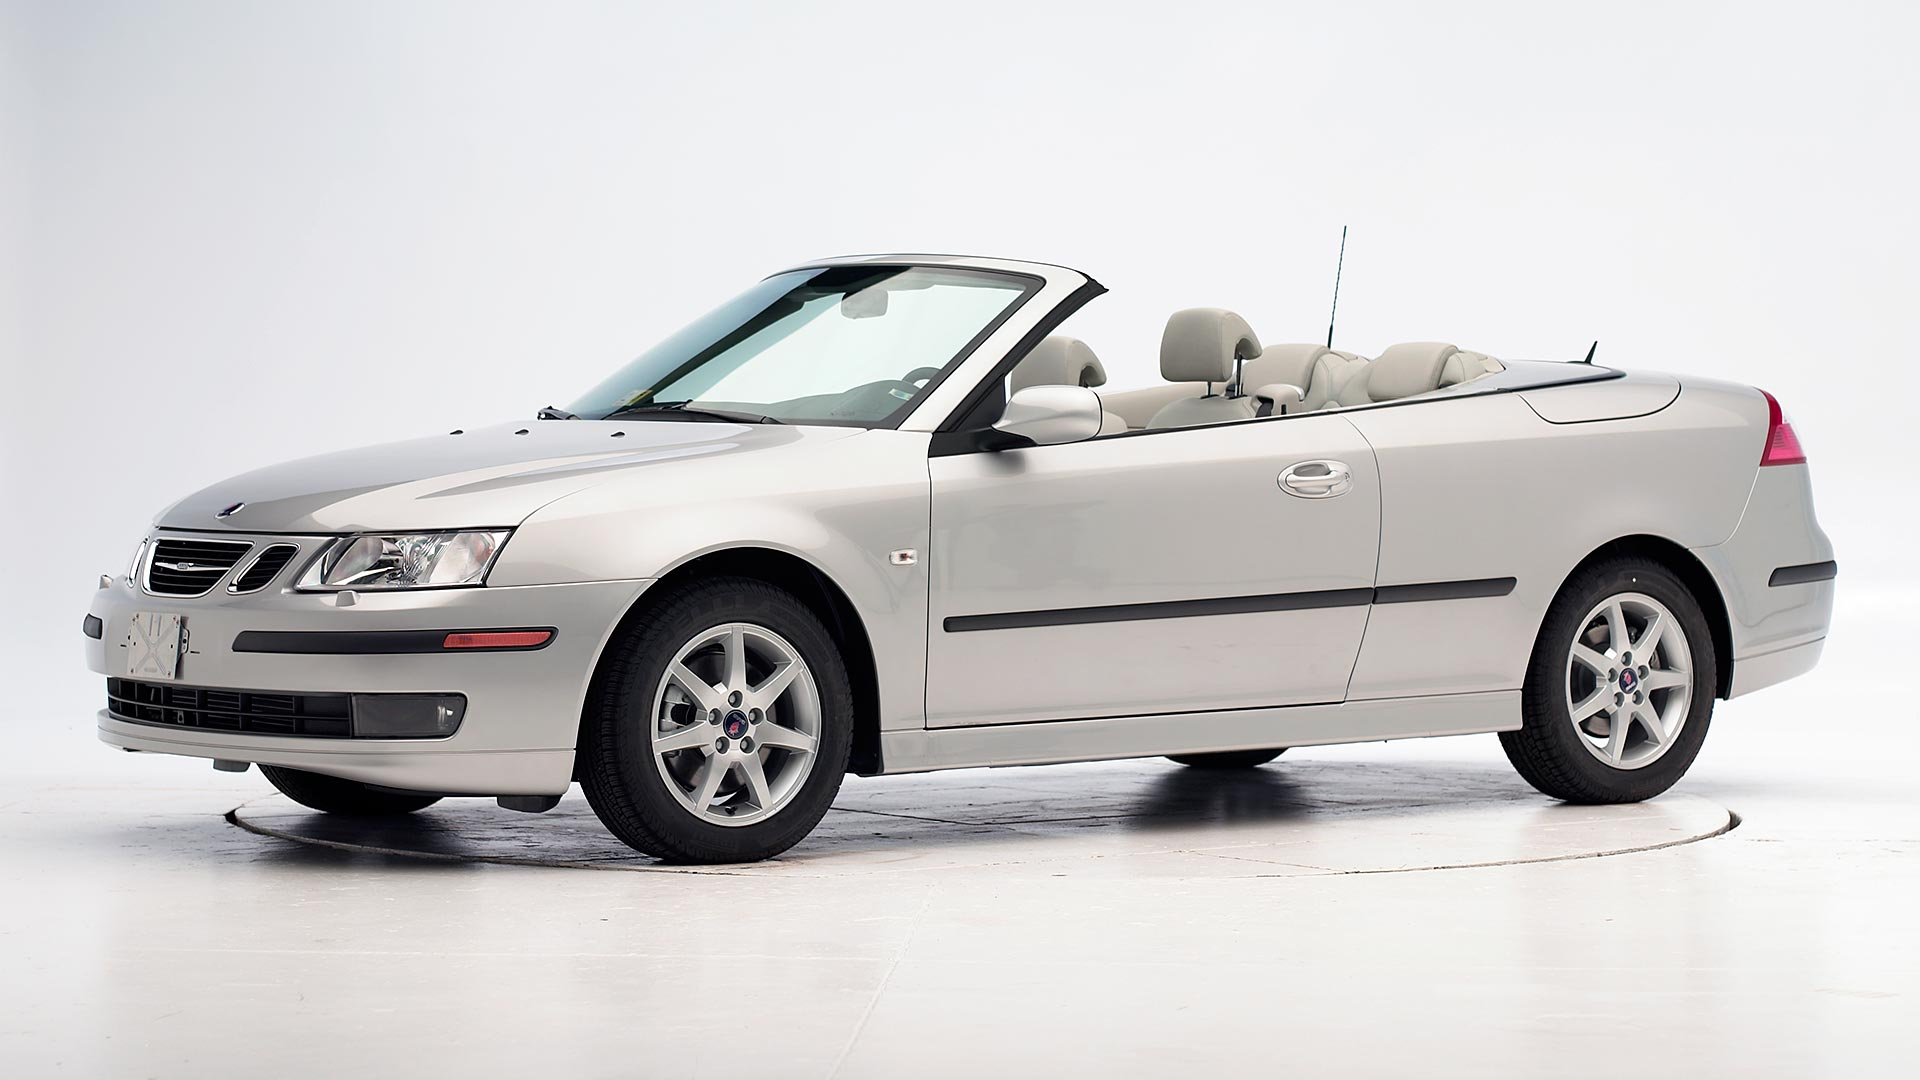 2008 Saab 9-3 2-door convertible